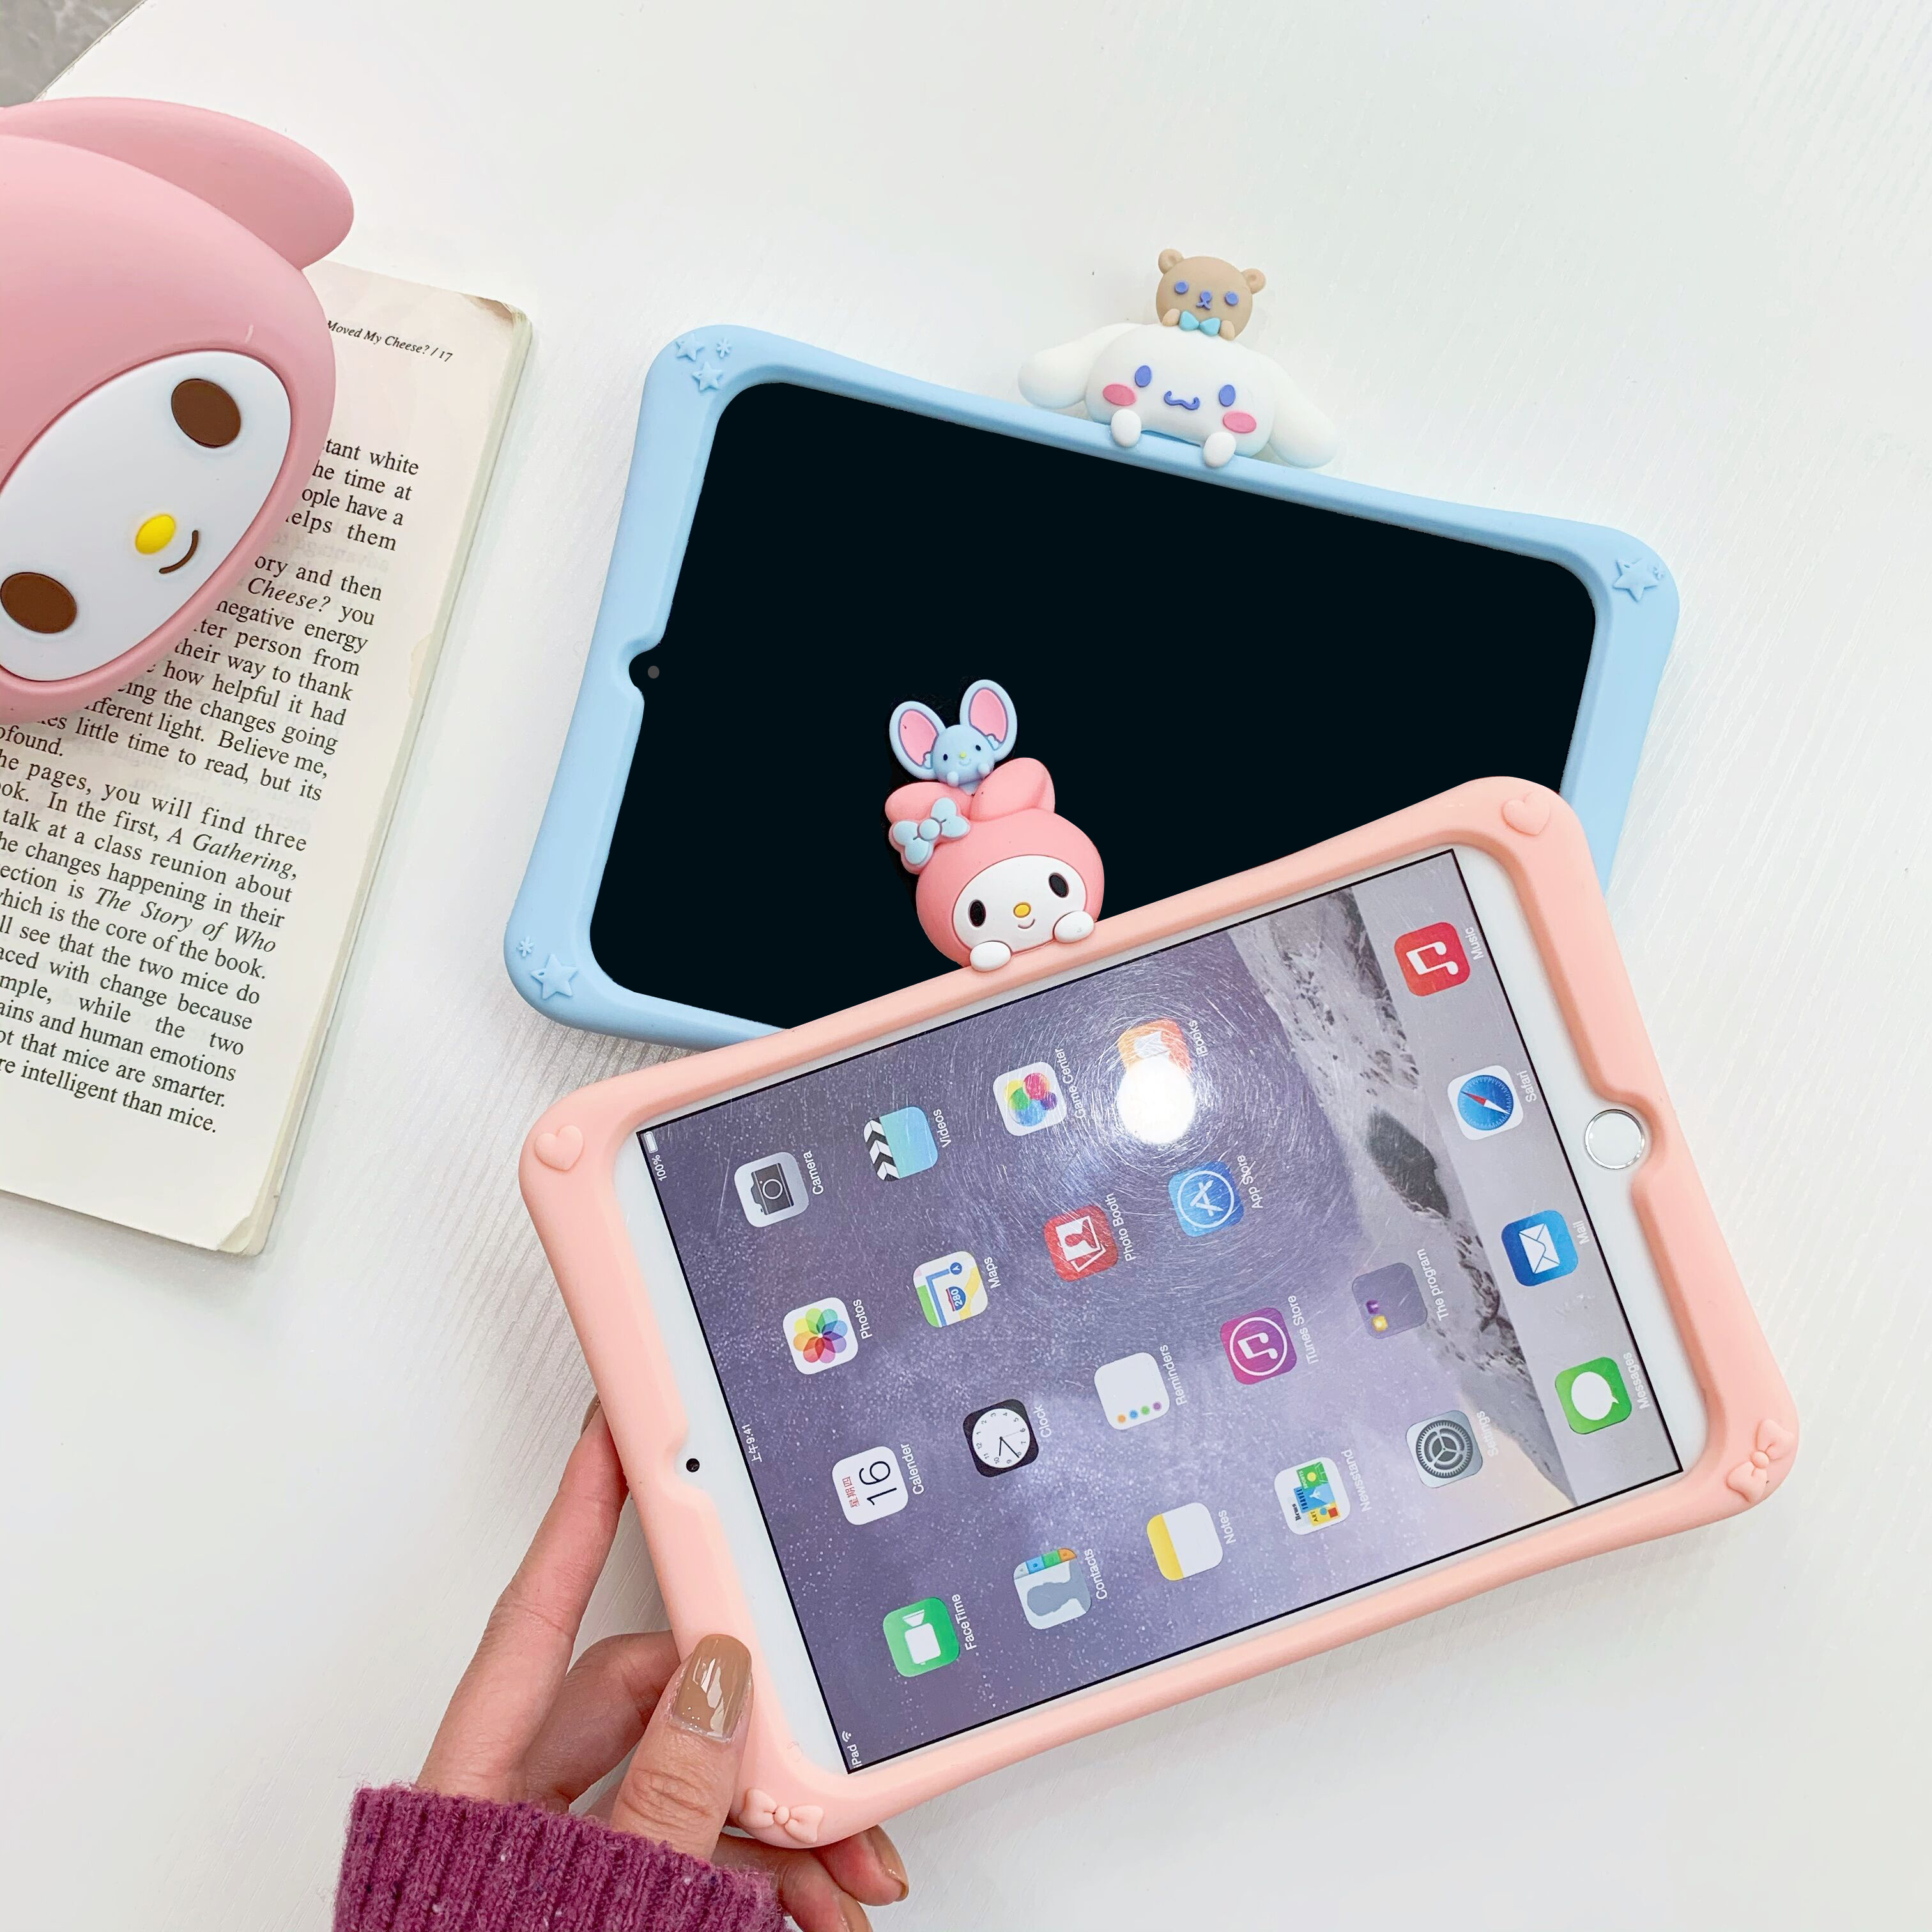 Rlenda Cartoon Pattern Soft Back Case For Ipad Pro 10 5 Air 3 10 2 Pro 11 Hidden Stand Cover For Ipad Mini 123 4 5 Tablets E Books Case Aliexpress